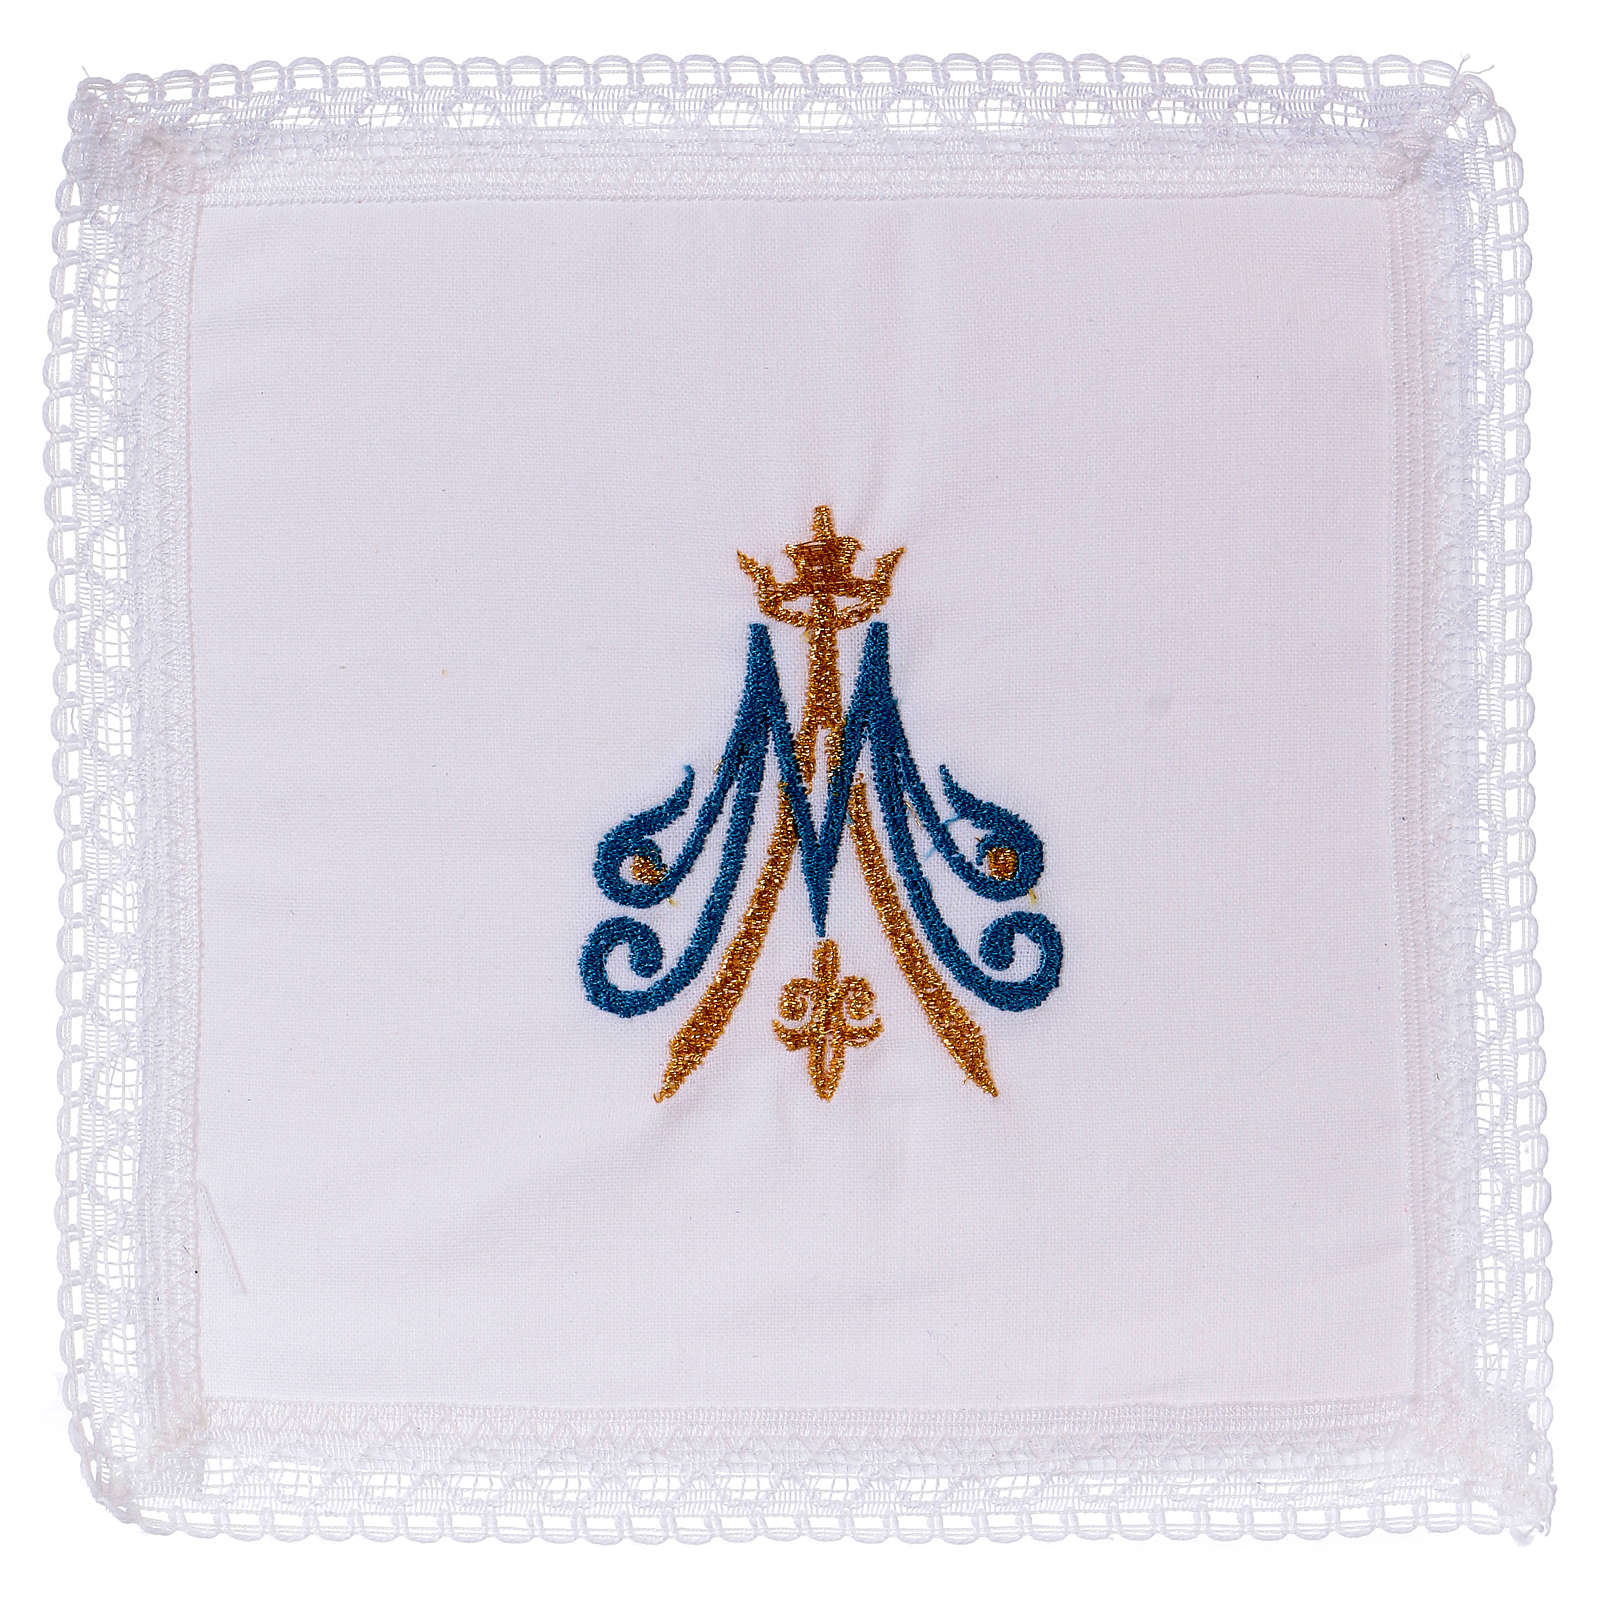 Pall chalice with Marian symbol, 100% cotton 4